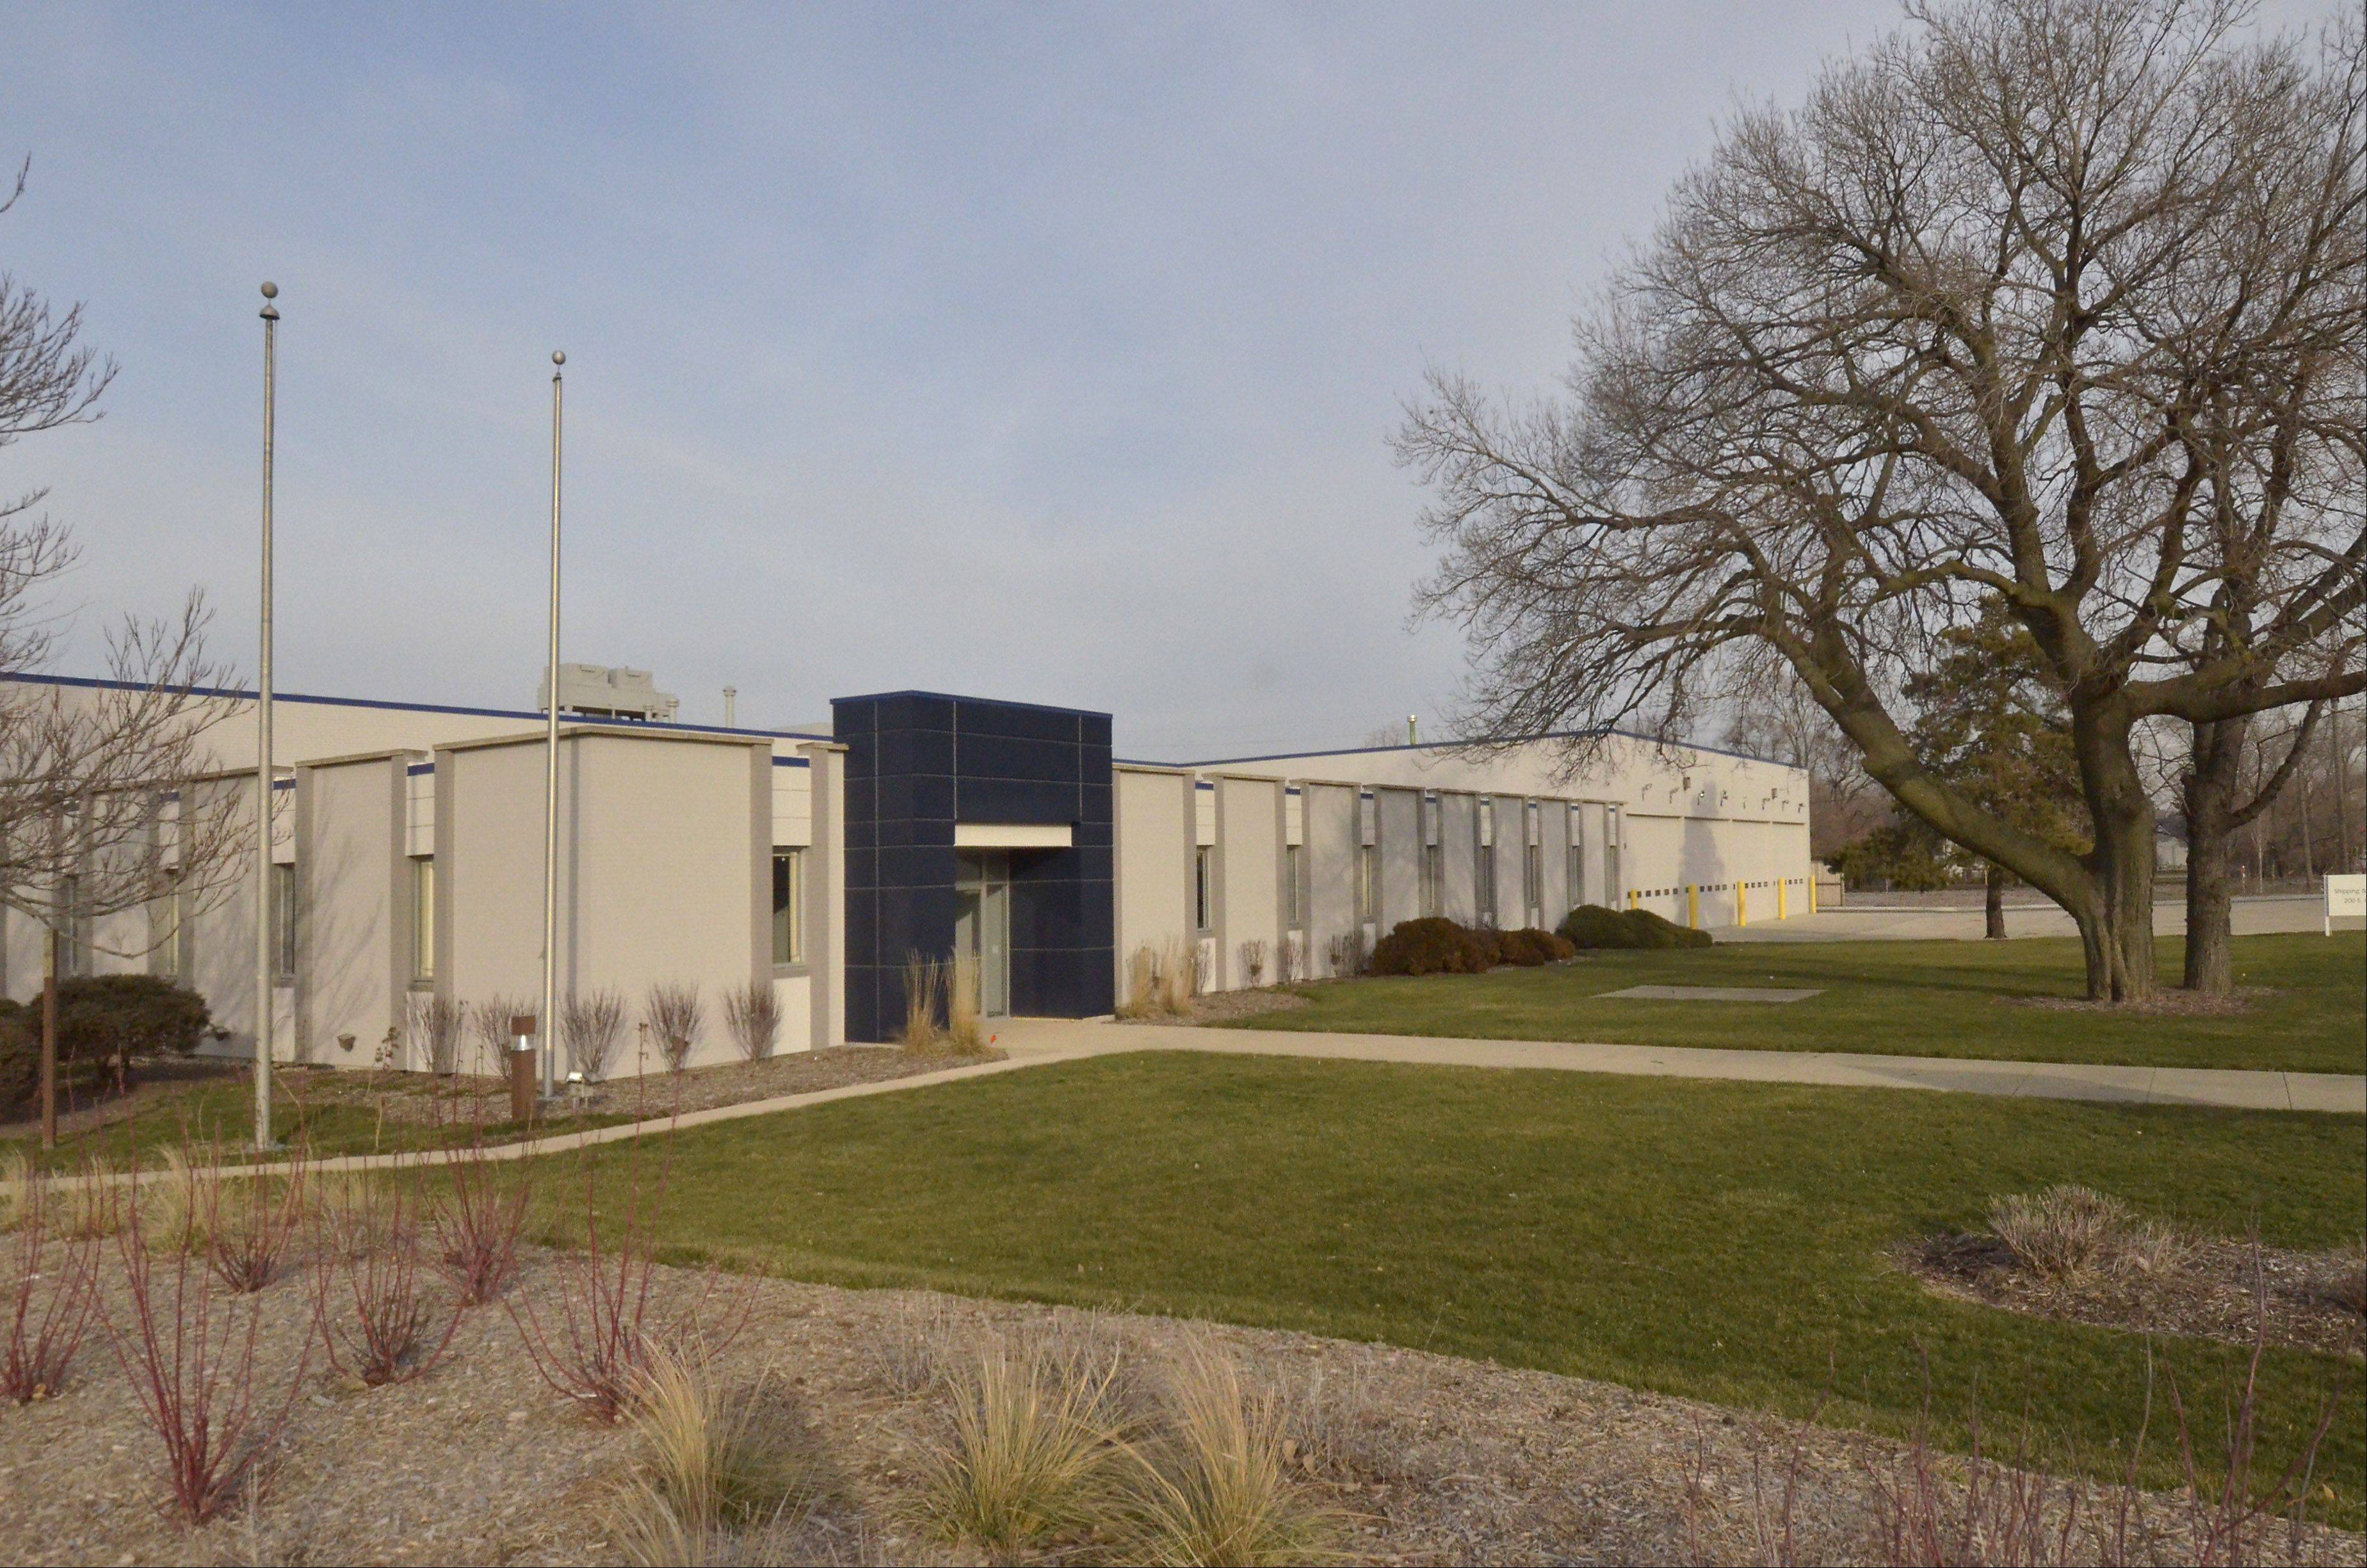 The Des Plaines City Council supports a property tax break to help Motor Coach Industries establish its U.S. headquarters in the city. The company wants to move 37 full-time office employees from Schaumburg and 30 from an existing Des Plaines service center to a vacant building on Oakton Street.